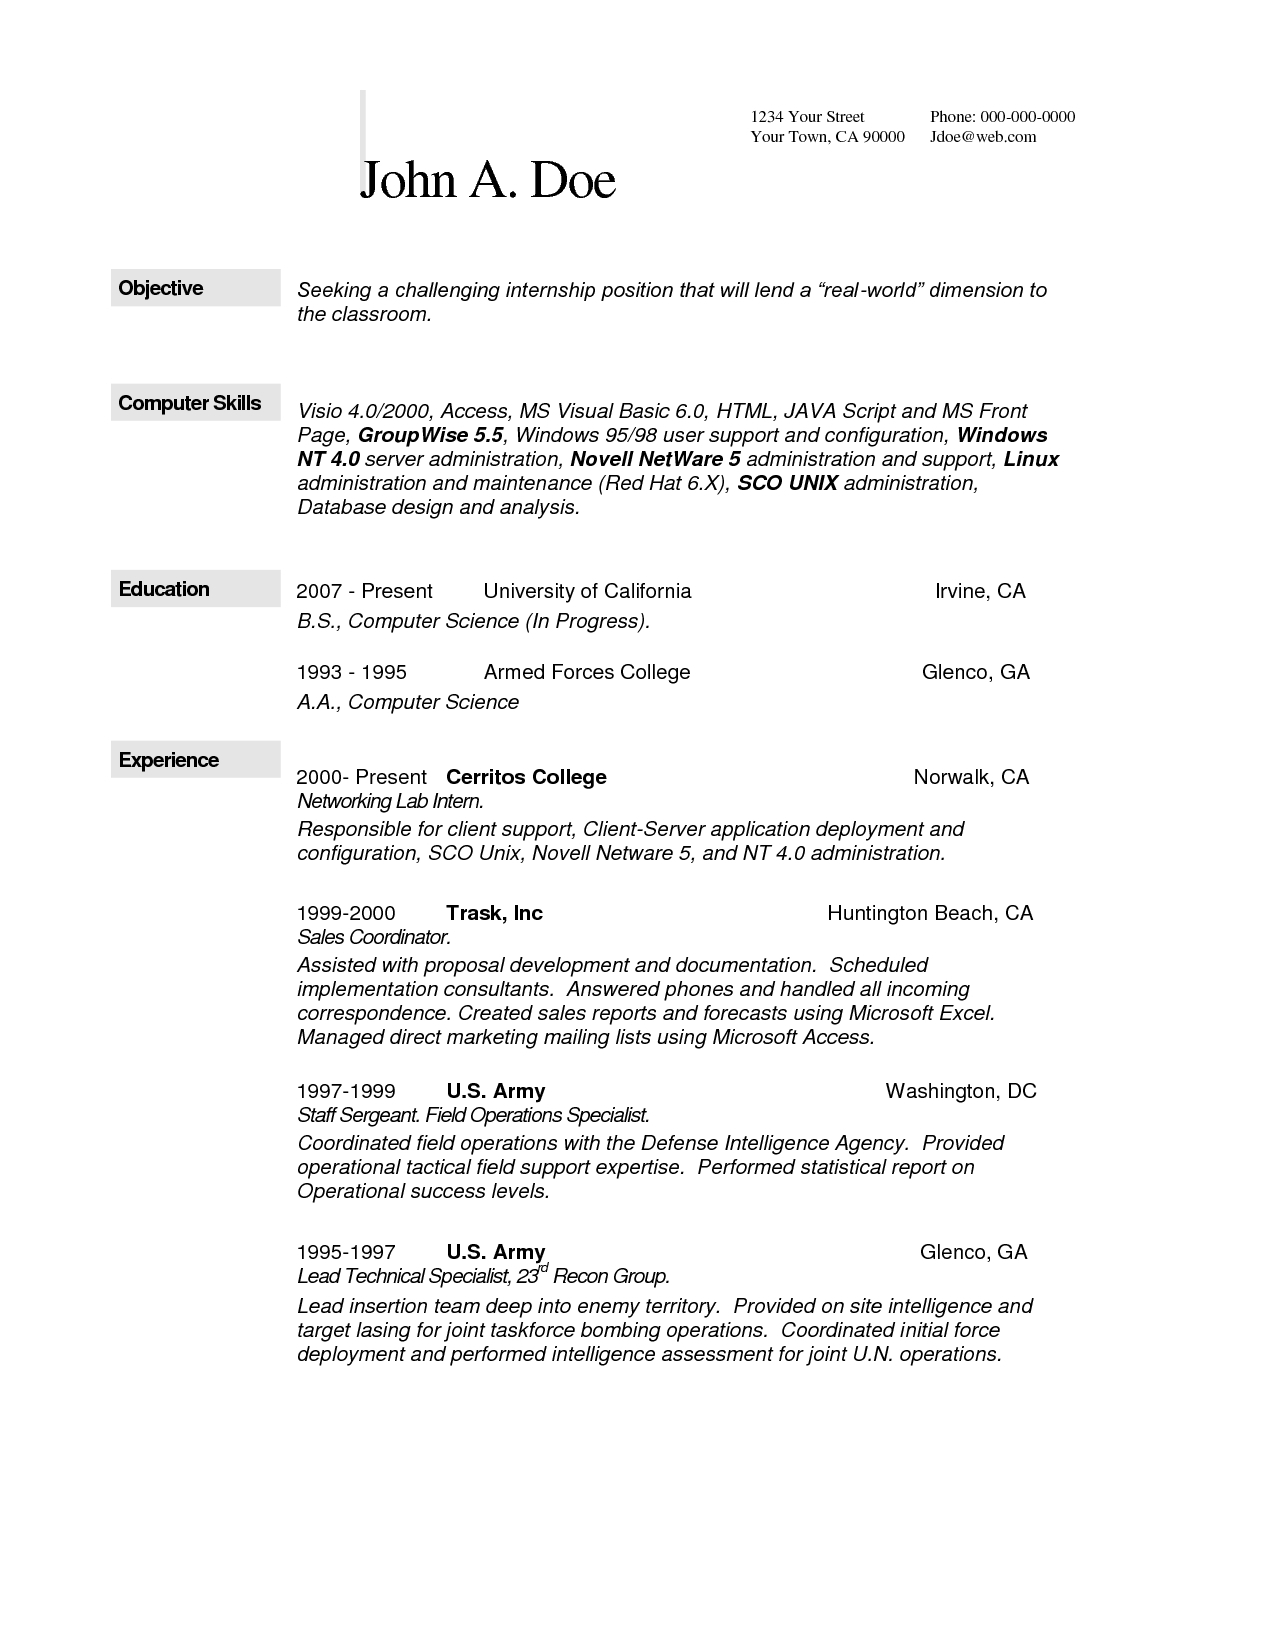 cscareerquestions resume template example-best resume templates reddit best of 100 best resume template best 4-k